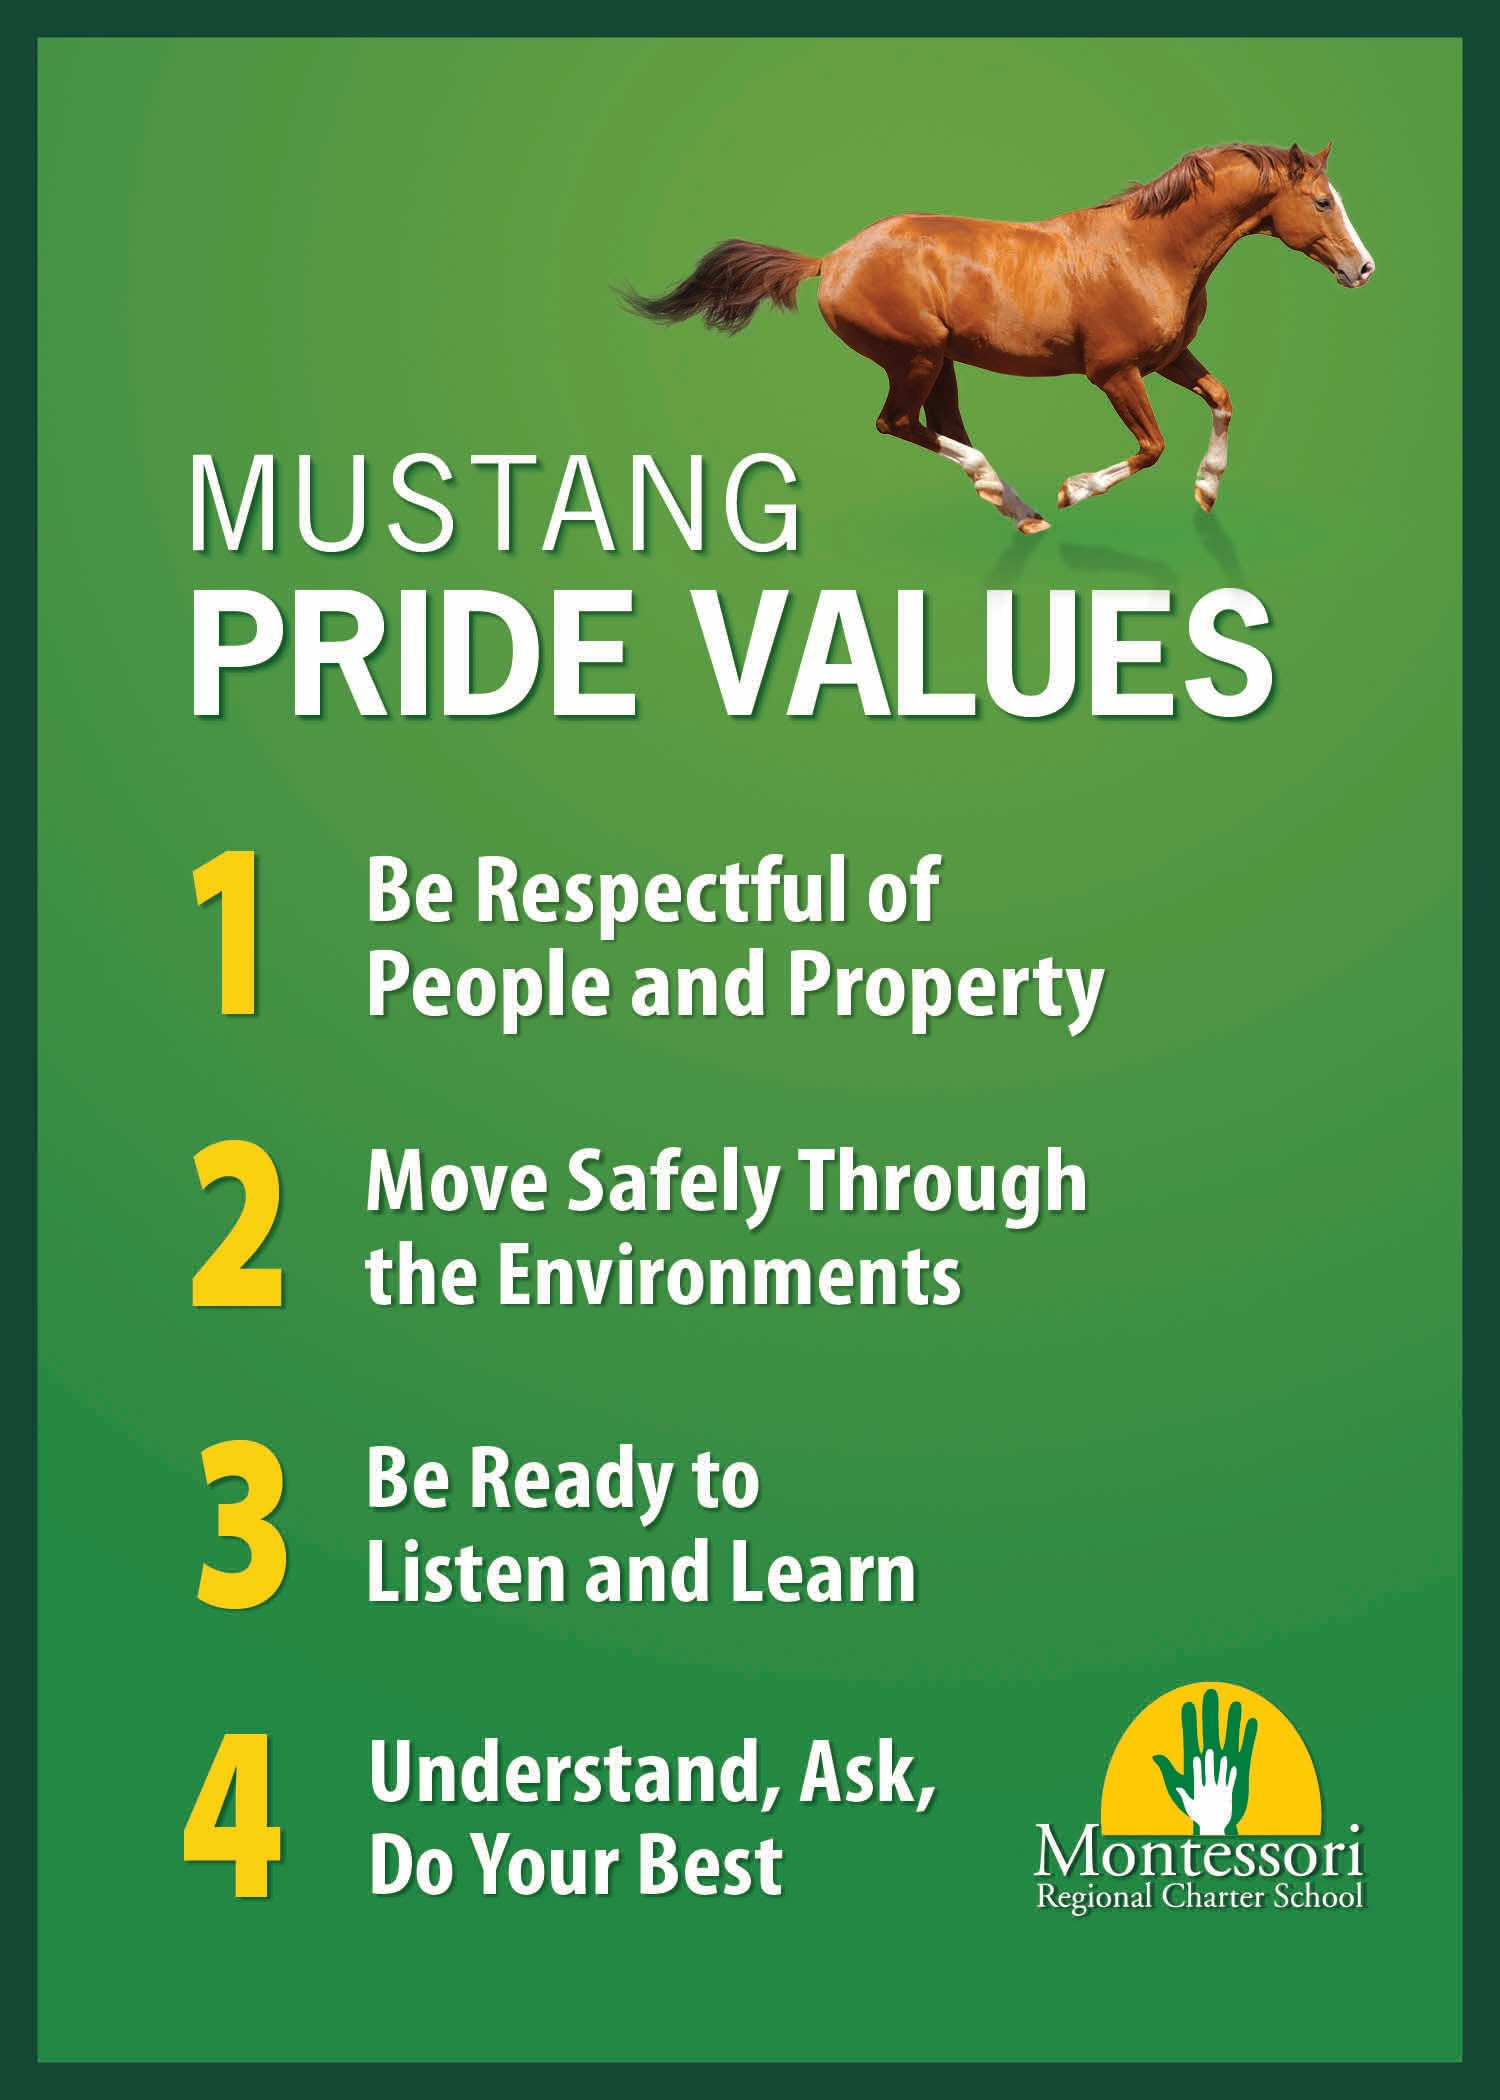 Mustang Pride Values